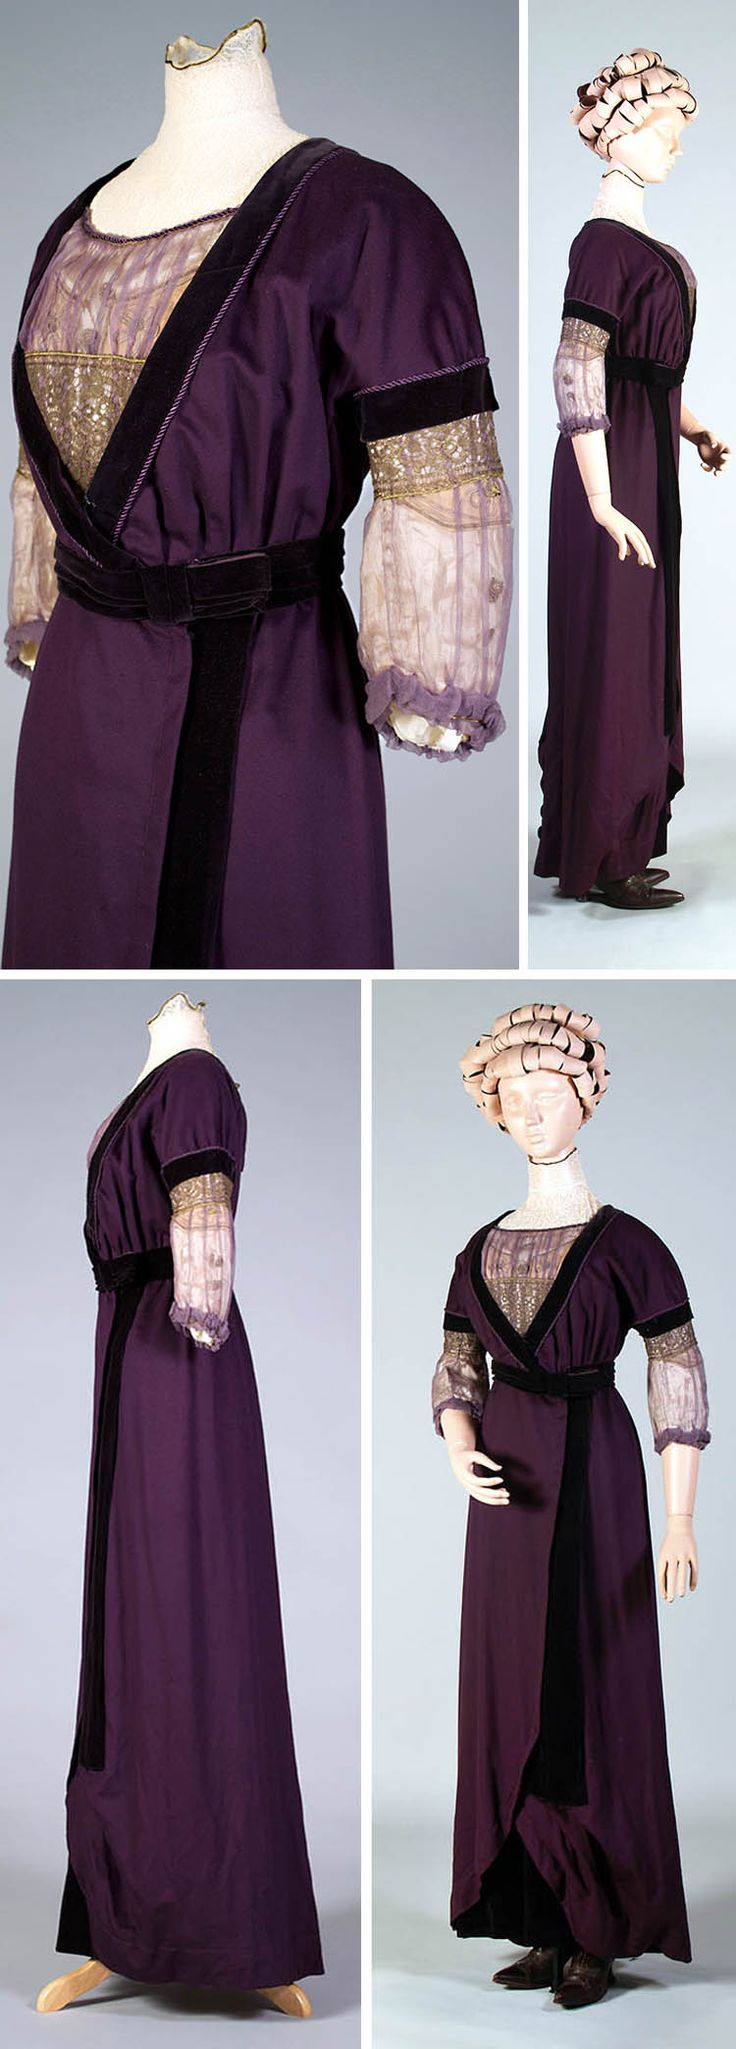 """Purple wool & velvet dress ca. 1912. Kent State Univ. Museum blog: """"[A]t the turn-of-the-century, the shape of corsets changed significantly and created a different silhouette. Rather than pushing the bust upwards and creating fullness nearer the armpits, the corsets allowed the bustline to fall much lower as the chest was pushed forward and the hips backwards. The sideview of the dress on the two different mounts shows how the differences in body shape change the way the dress hangs."""""""